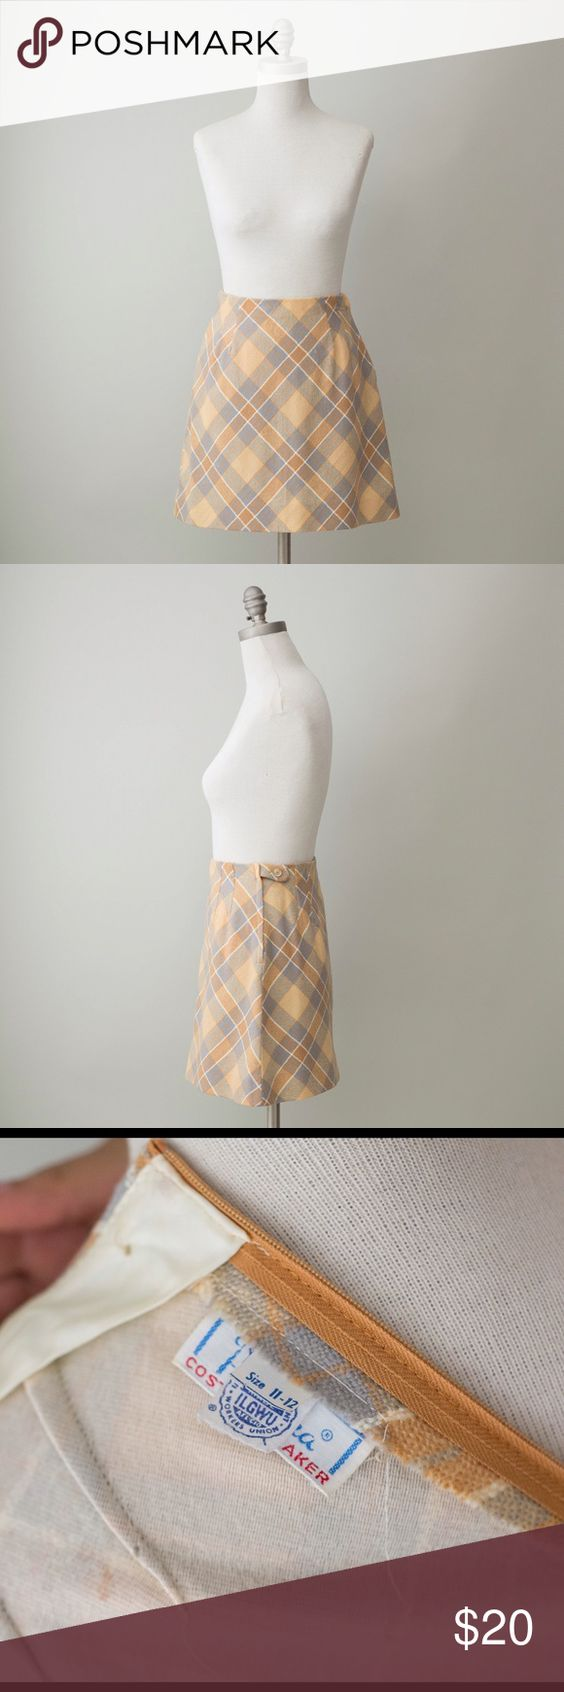 Vintage A-Line Plaid Mini Skirt Vintage Plaid mini skirt. Tag says 11/12 but vintage sizes are different than modern sizes. This fits a size 2/4. Skirts A-Line or Full